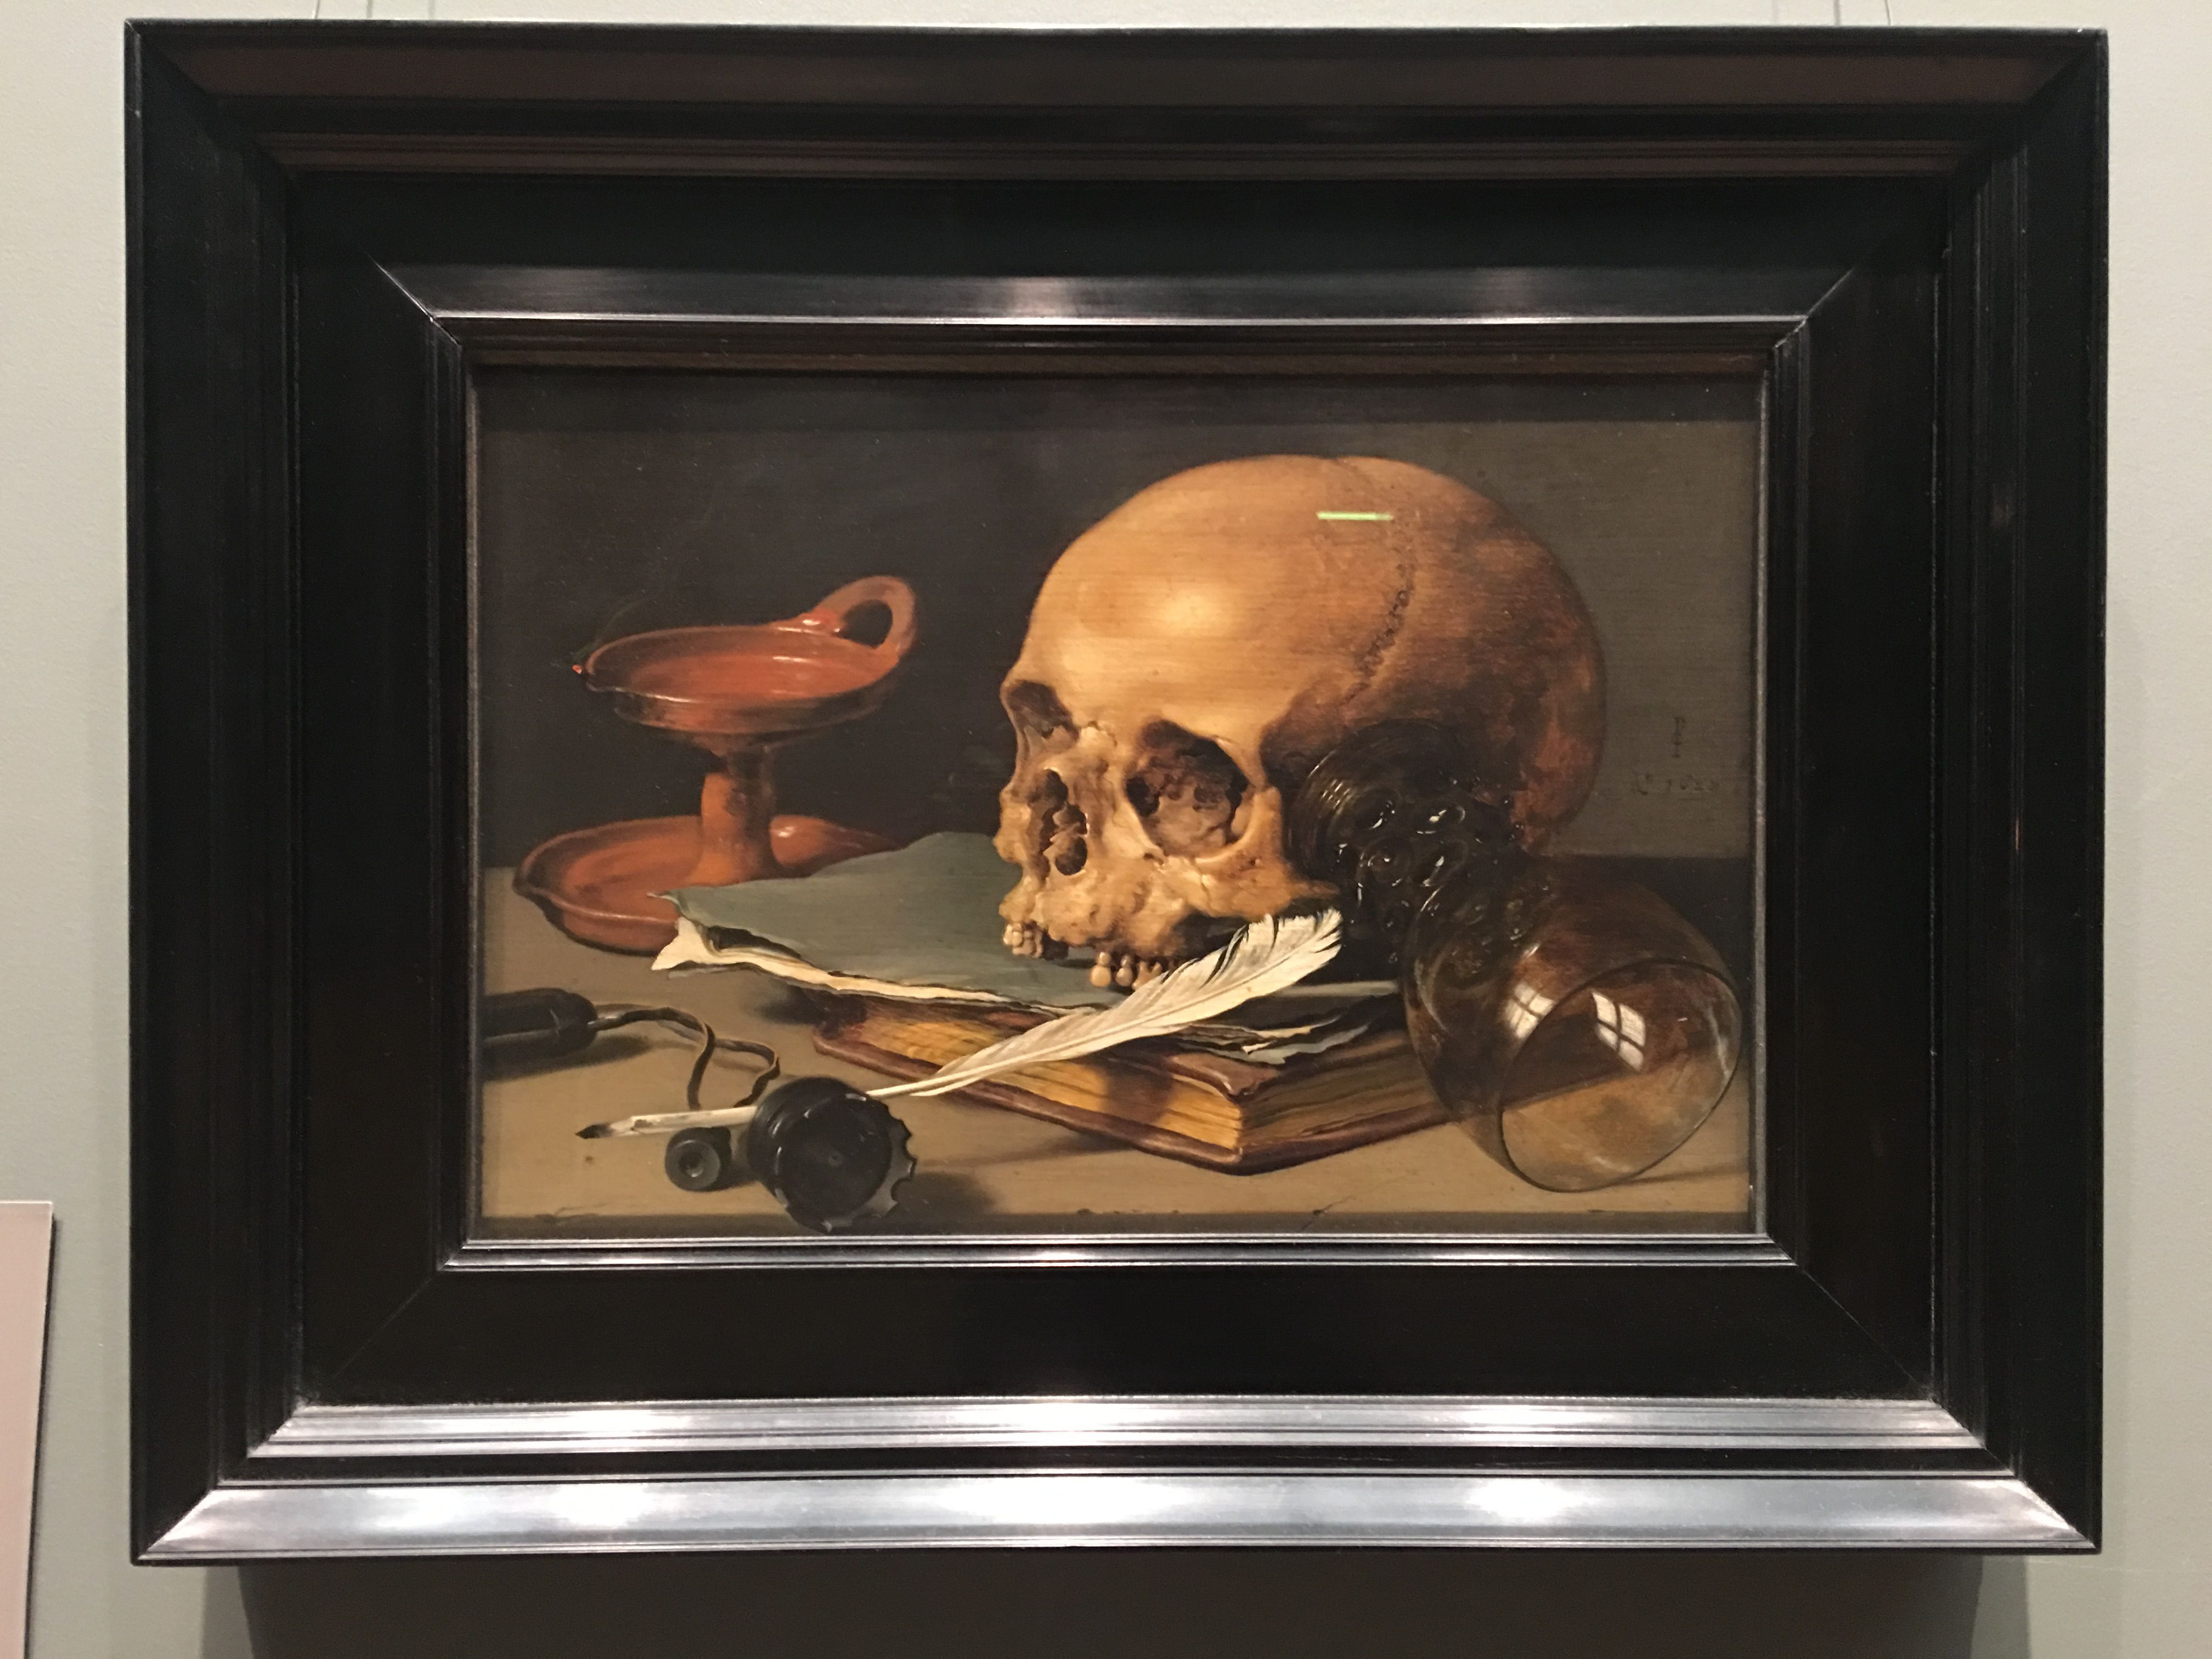 still life with skull and writing Buy pieter claesz - still life with a skull and a writing quill (1628), 60 x 40 cm (more sizes available), canvas print stretched and framed.